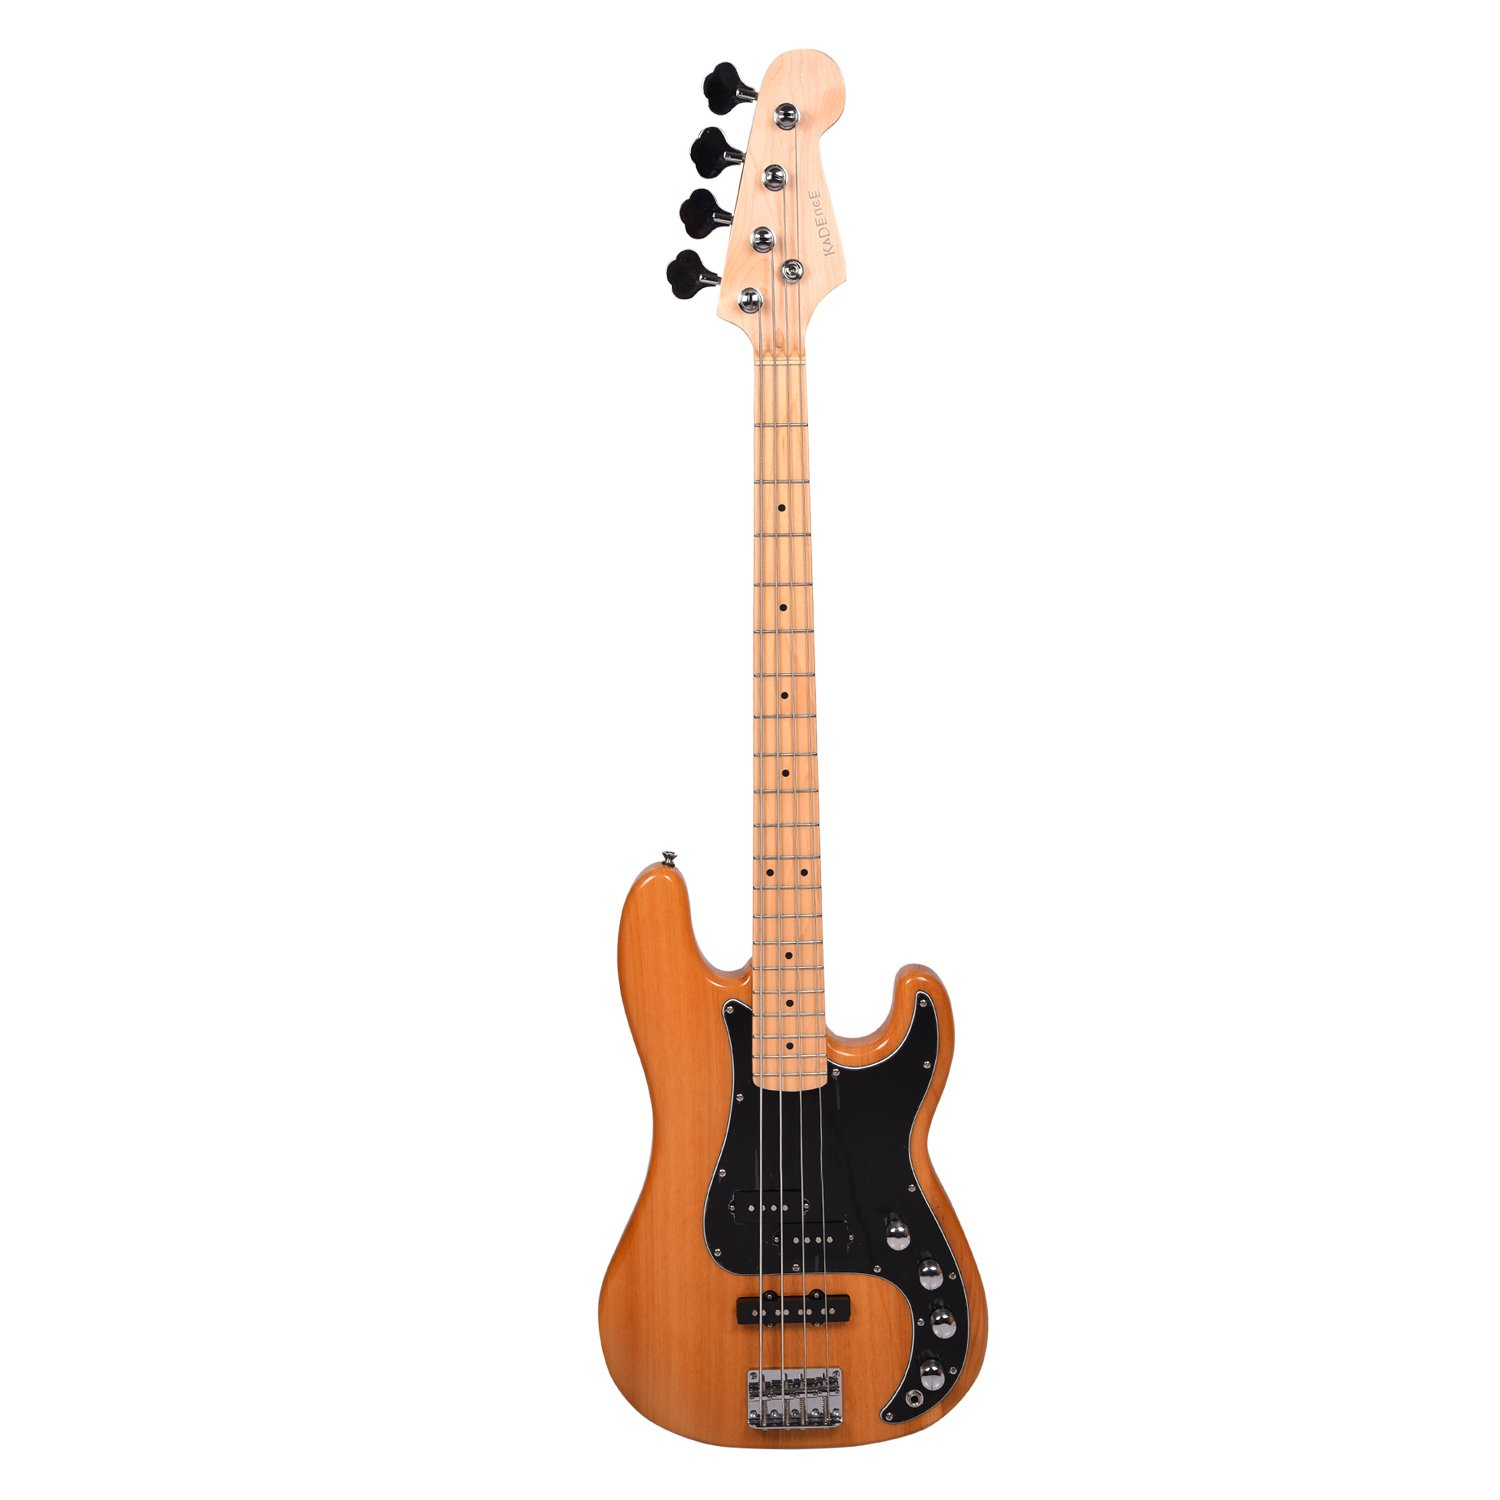 My eb bass squier vintage modified jazz bass - Kadence Chronicle Series Electric Bass Guitar Natural Ash Wood With P J Pickup 2